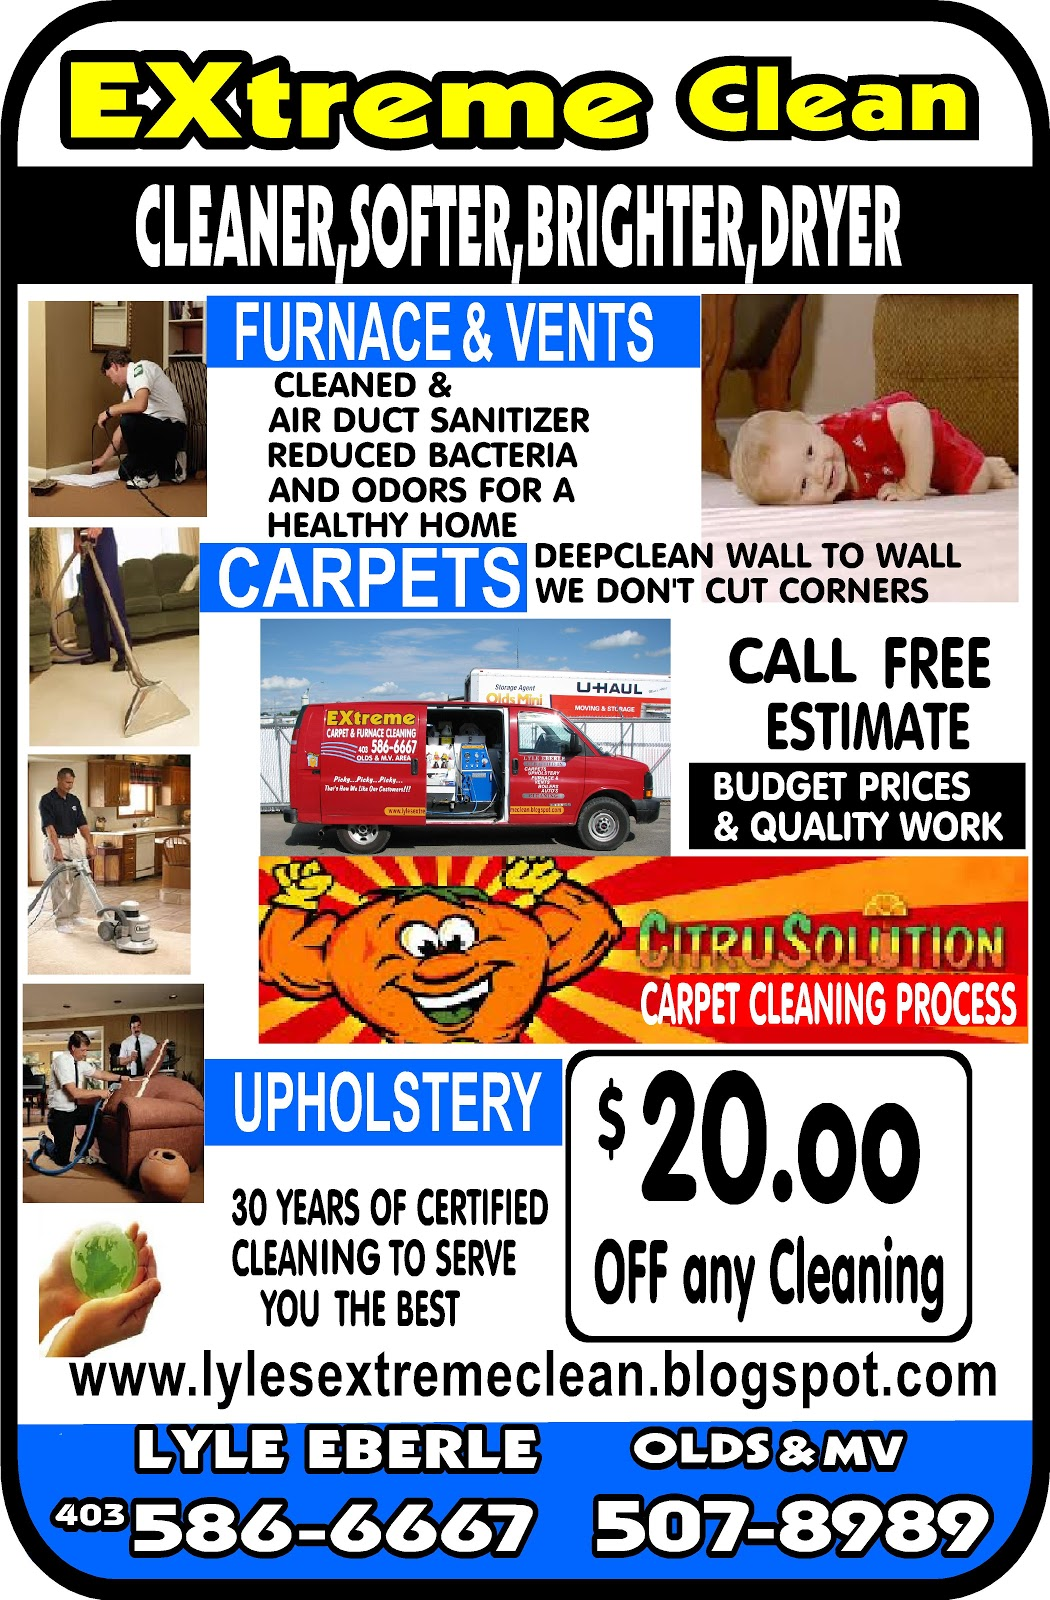 Extreme Carpet And Furnace Cleaning 403 586 6667 403 586 6667